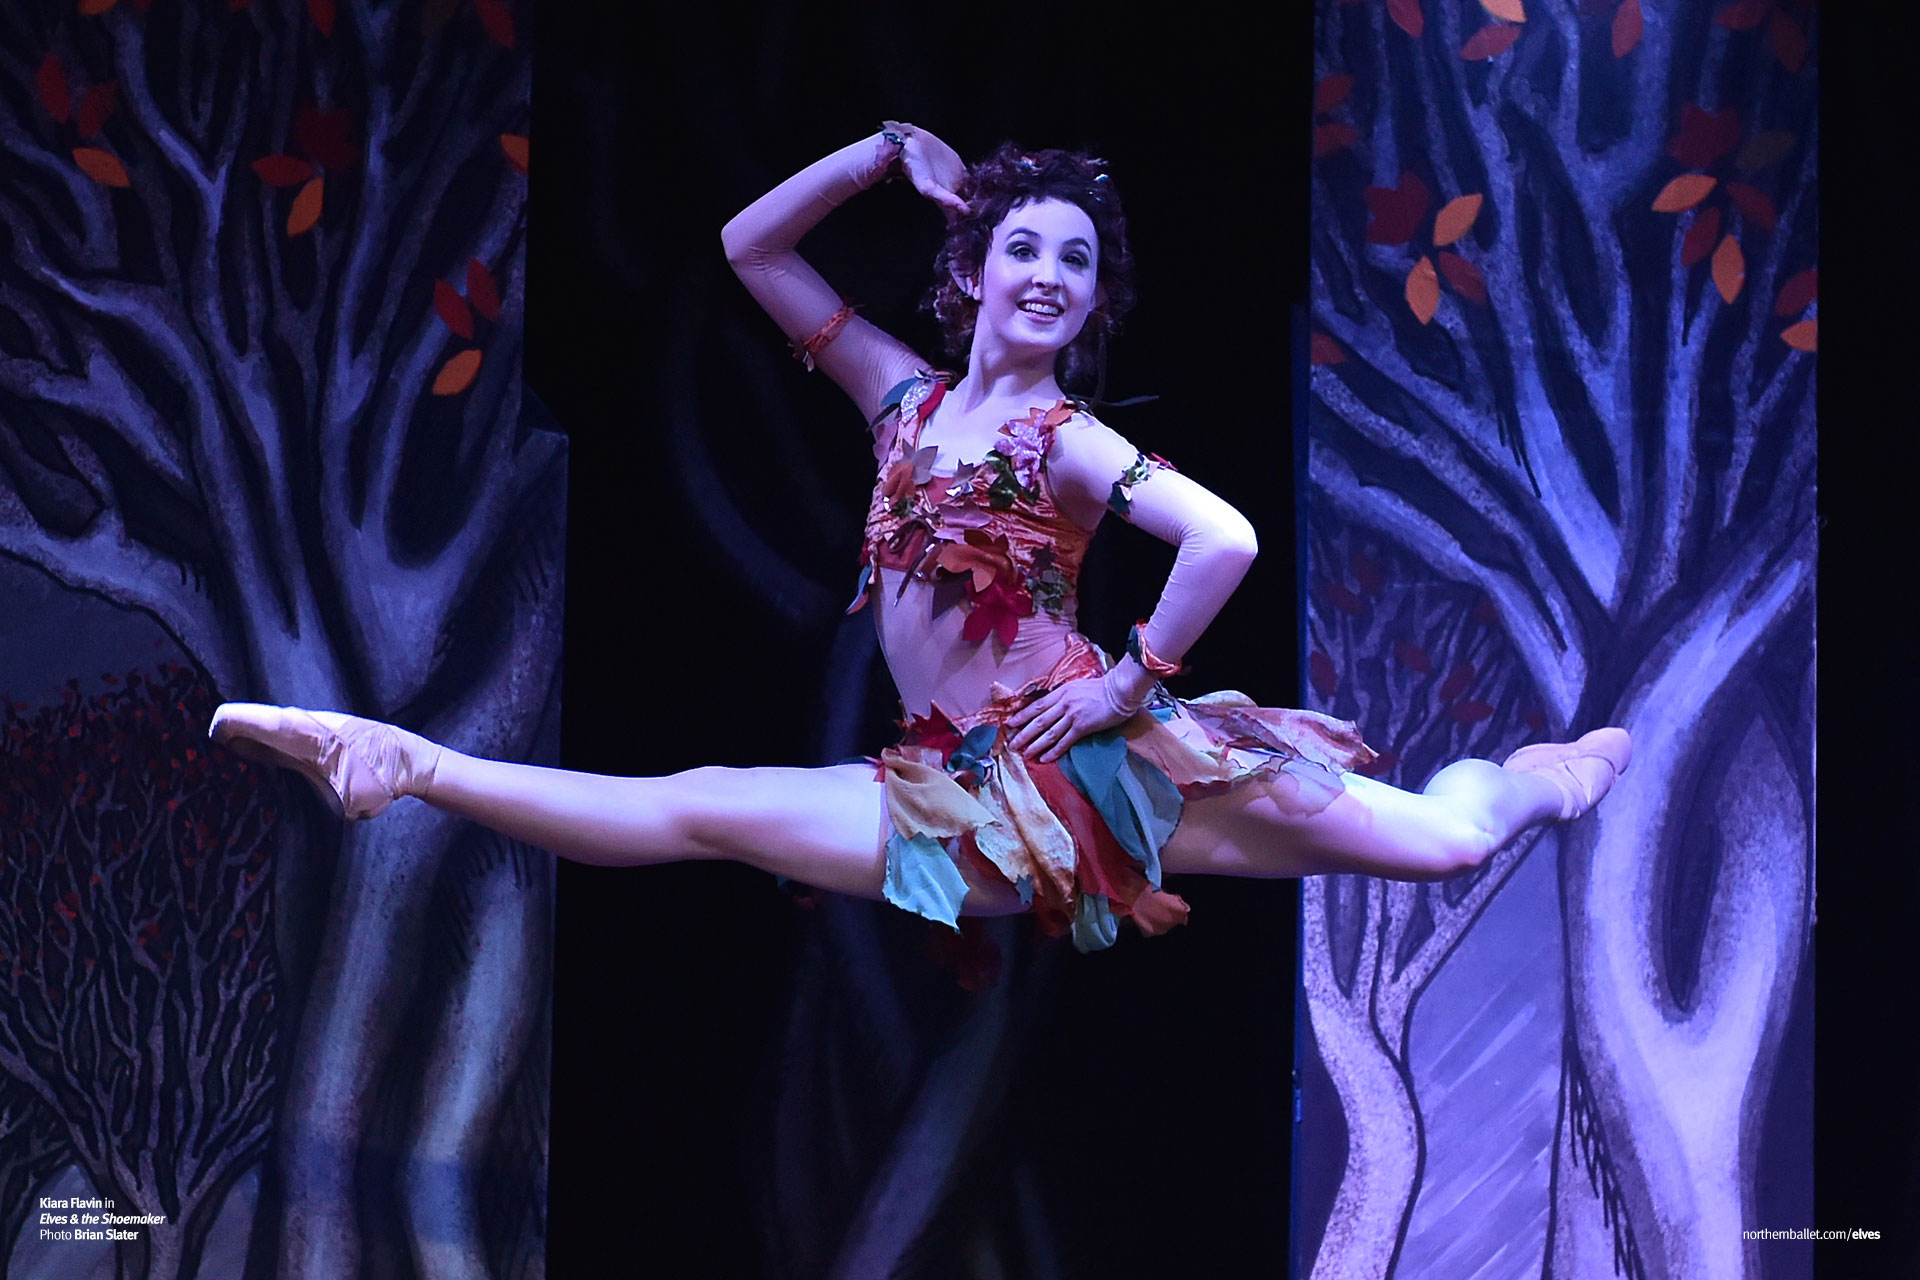 Dancer Kiara Flavin as Stitch the Elf in Northern Ballet's 'Elves and the Shoemaker'.